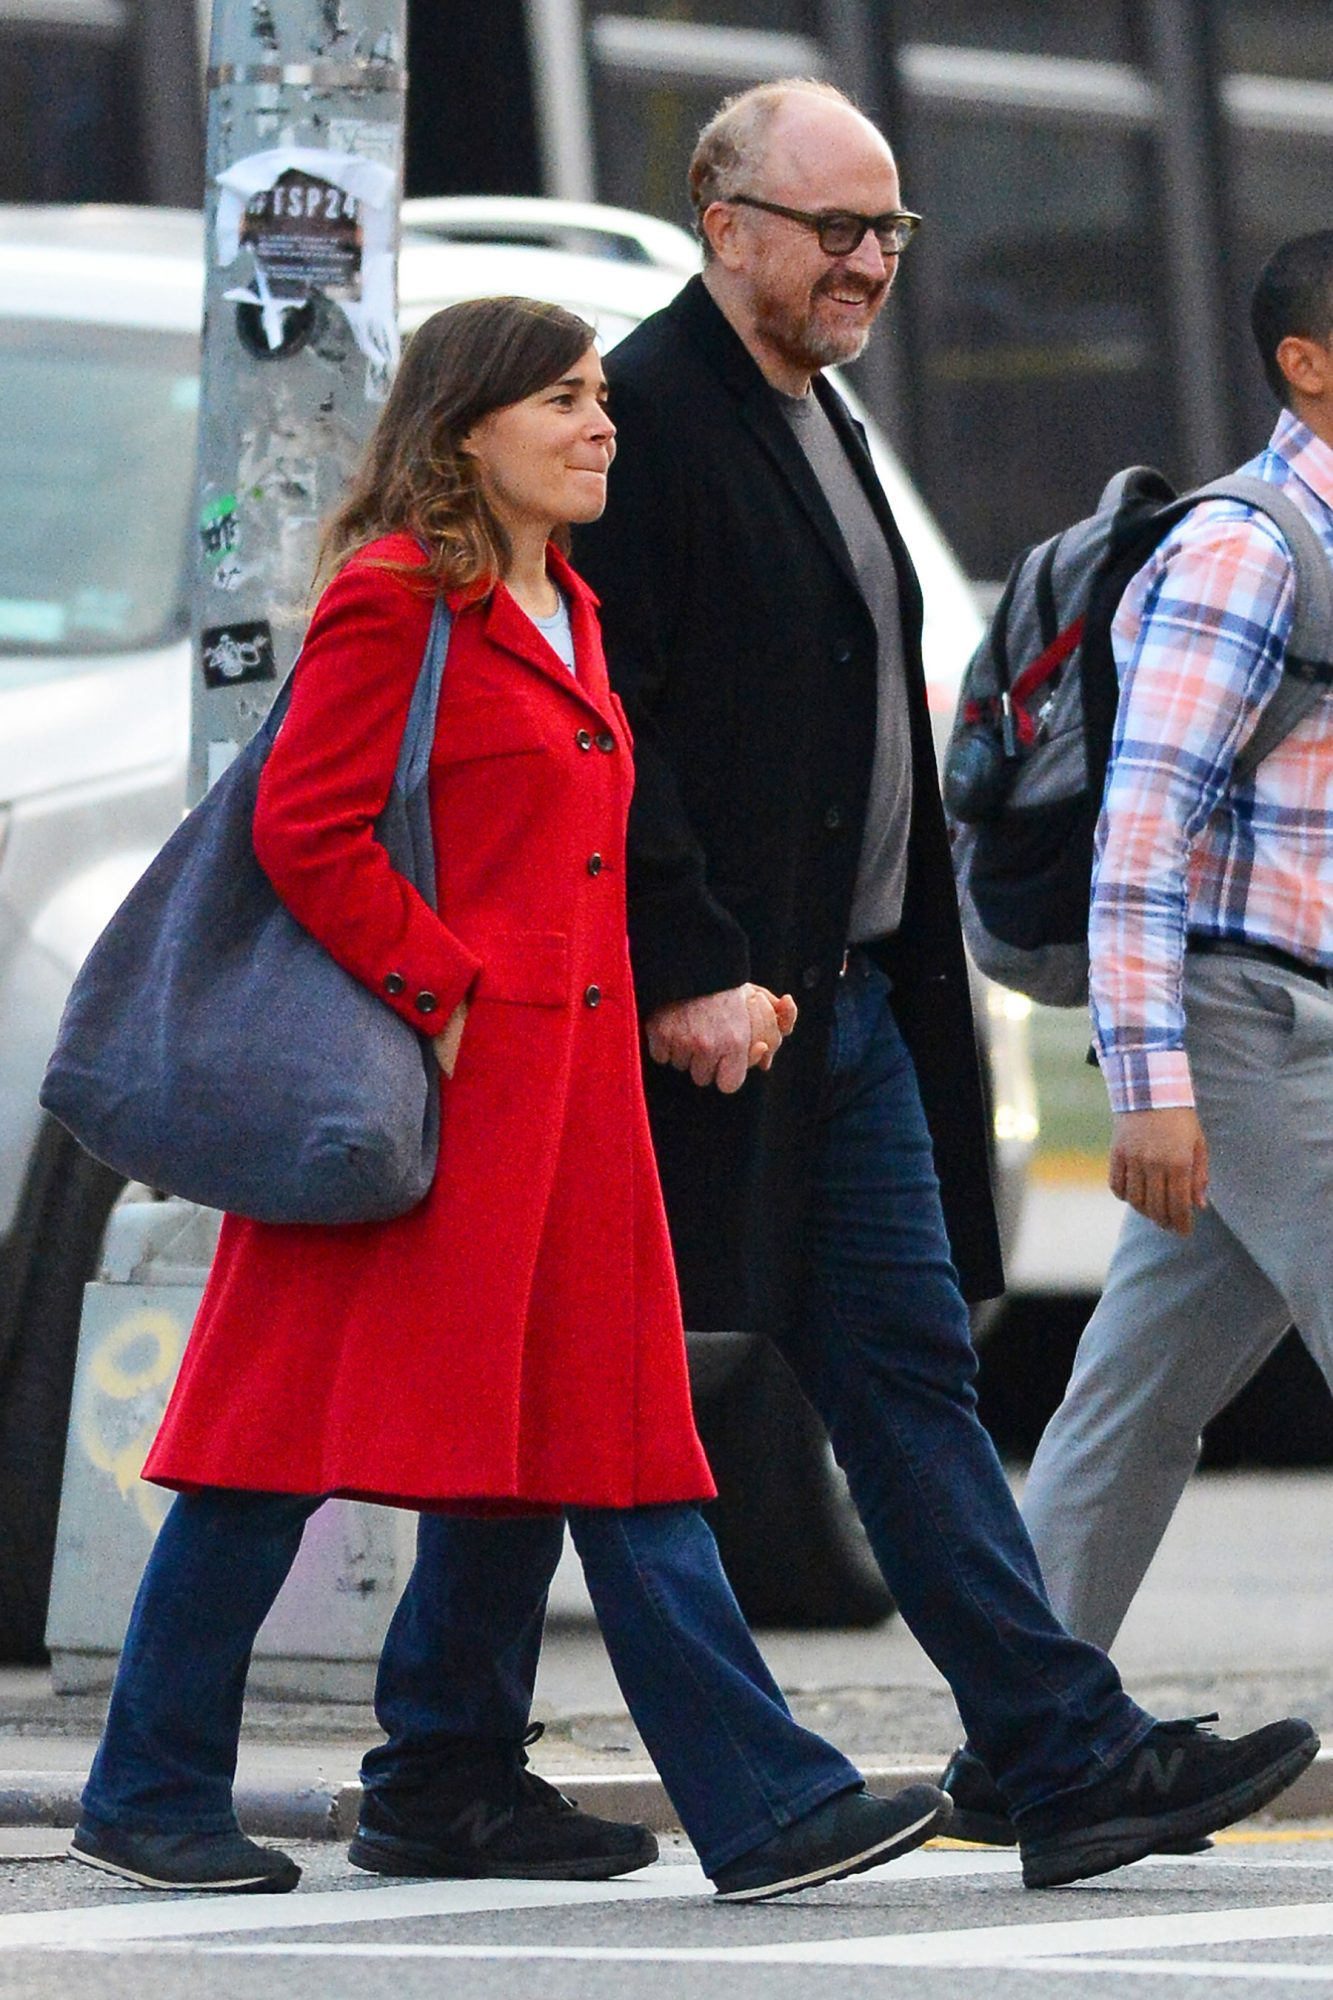 EXCLUSIVE: Louis CK is Spotted Holding Hands with French Comedian Blanche Gardin in New York City.